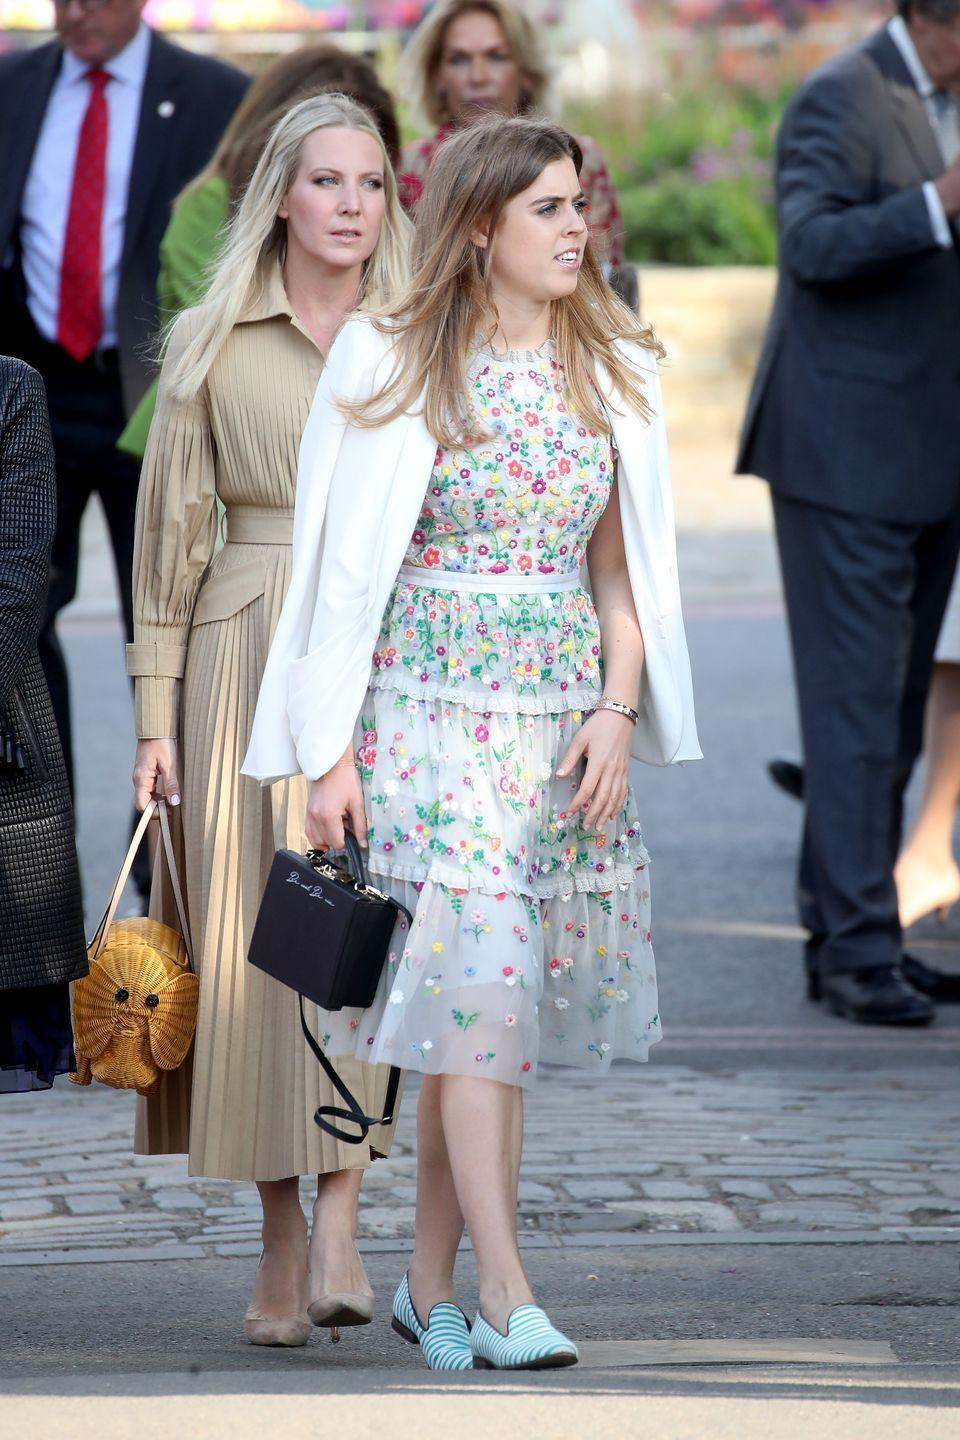 """<p>Looking like springtime herself in an adorable flowered dress for the Chelsea Flower Show in 2018, Bea carried a teeny structured handbag. What you might not have noticed was the subtle message, """"<a href=""""https://www.goodhousekeeping.com/beauty/fashion/a20871358/princess-beatrice-chelsea-flower-show/"""" rel=""""nofollow noopener"""" target=""""_blank"""" data-ylk=""""slk:Be cool Be nice"""" was embellished on the side of the bag"""" class=""""link rapid-noclick-resp"""">Be cool Be nice"""" was embellished on the side of the bag</a>, notes GoodHouskeeping.com. It's a slogan associated with <a href=""""http://www.becoolbenice.org/"""" rel=""""nofollow noopener"""" target=""""_blank"""" data-ylk=""""slk:an anti-bullying campaign"""" class=""""link rapid-noclick-resp"""">an anti-bullying campaign</a>. Or perhaps a nod to the <a href=""""https://www.goodhousekeeping.com/life/a22626563/princess-eugenie-beatrice-kate-middleton-hat-wedding/"""" rel=""""nofollow noopener"""" target=""""_blank"""" data-ylk=""""slk:bullying the princess received"""" class=""""link rapid-noclick-resp"""">bullying the princess received</a> after daring to wear her <a href=""""https://www.goodhousekeeping.com/beauty/fashion/g22700305/princess-eugenie-and-princess-beatrice-best-hats/?slide=20"""" rel=""""nofollow noopener"""" target=""""_blank"""" data-ylk=""""slk:fascinating """"octopus"""" fascinator"""" class=""""link rapid-noclick-resp"""">fascinating """"octopus"""" fascinator</a> to William and Kate's wedding?</p>"""